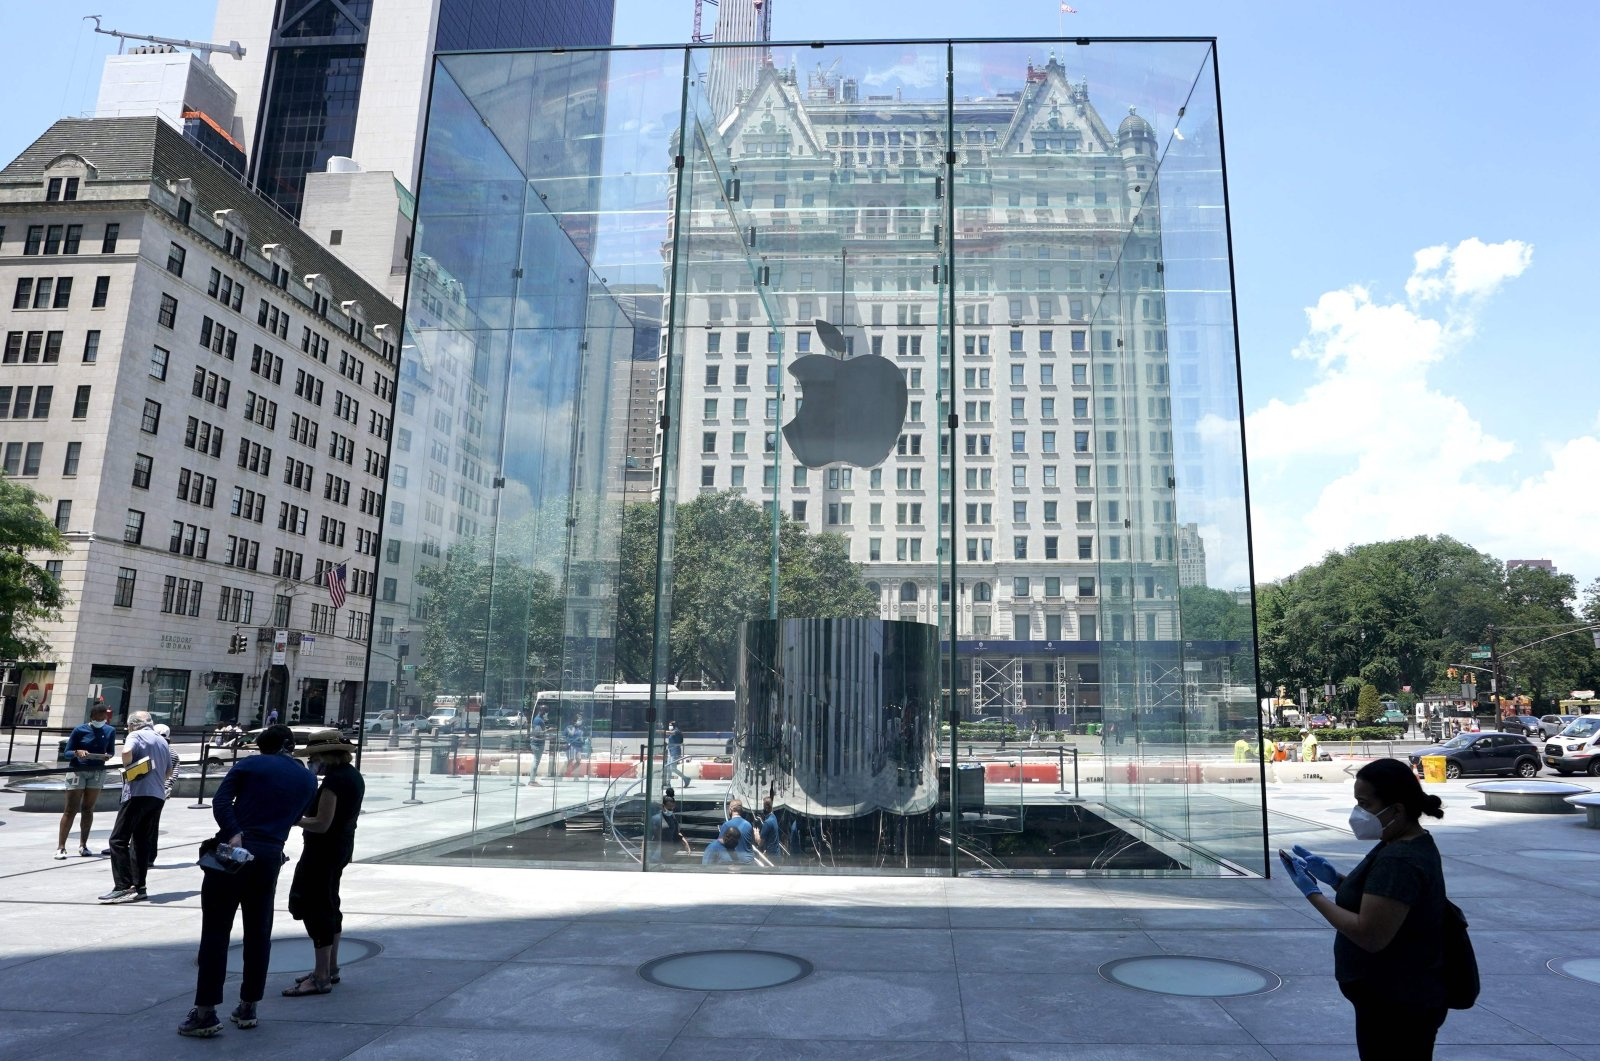 People pass by the Apple store on Fifth Avenue in New York City, the U.S., June 22, 2020. (AFP Photo)